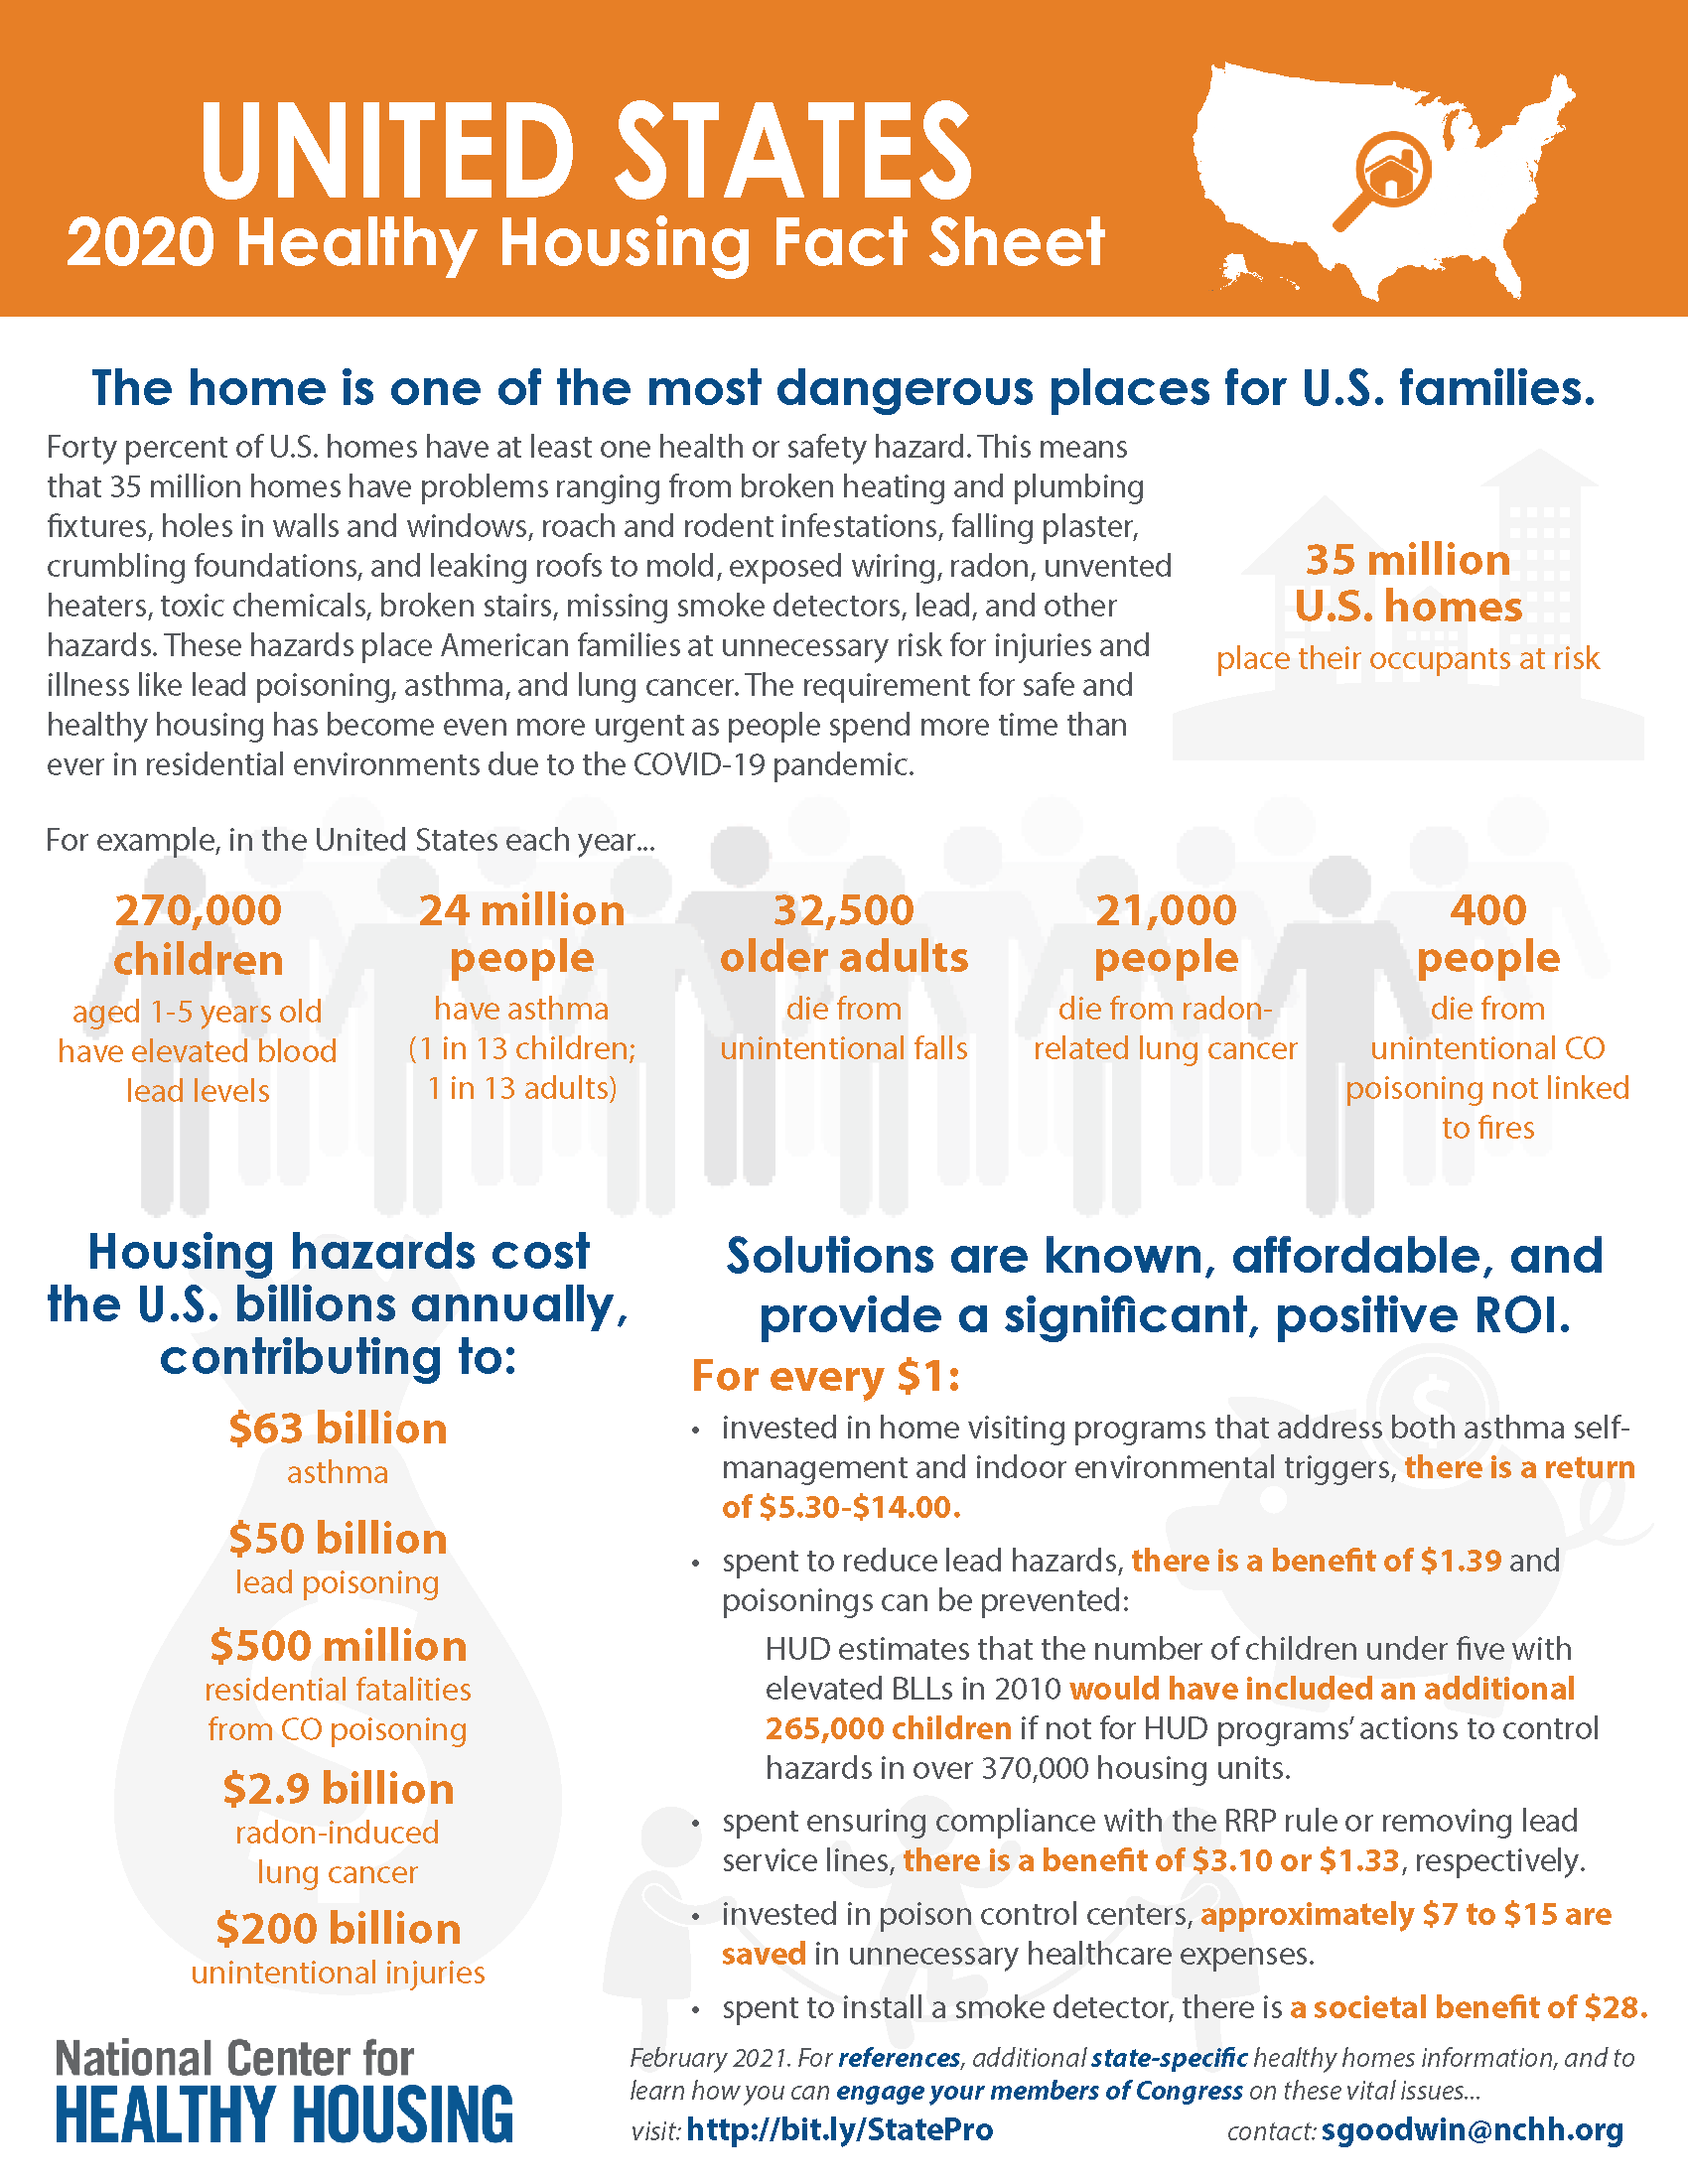 Healthy Housing Fact Sheet - United States of America 2020